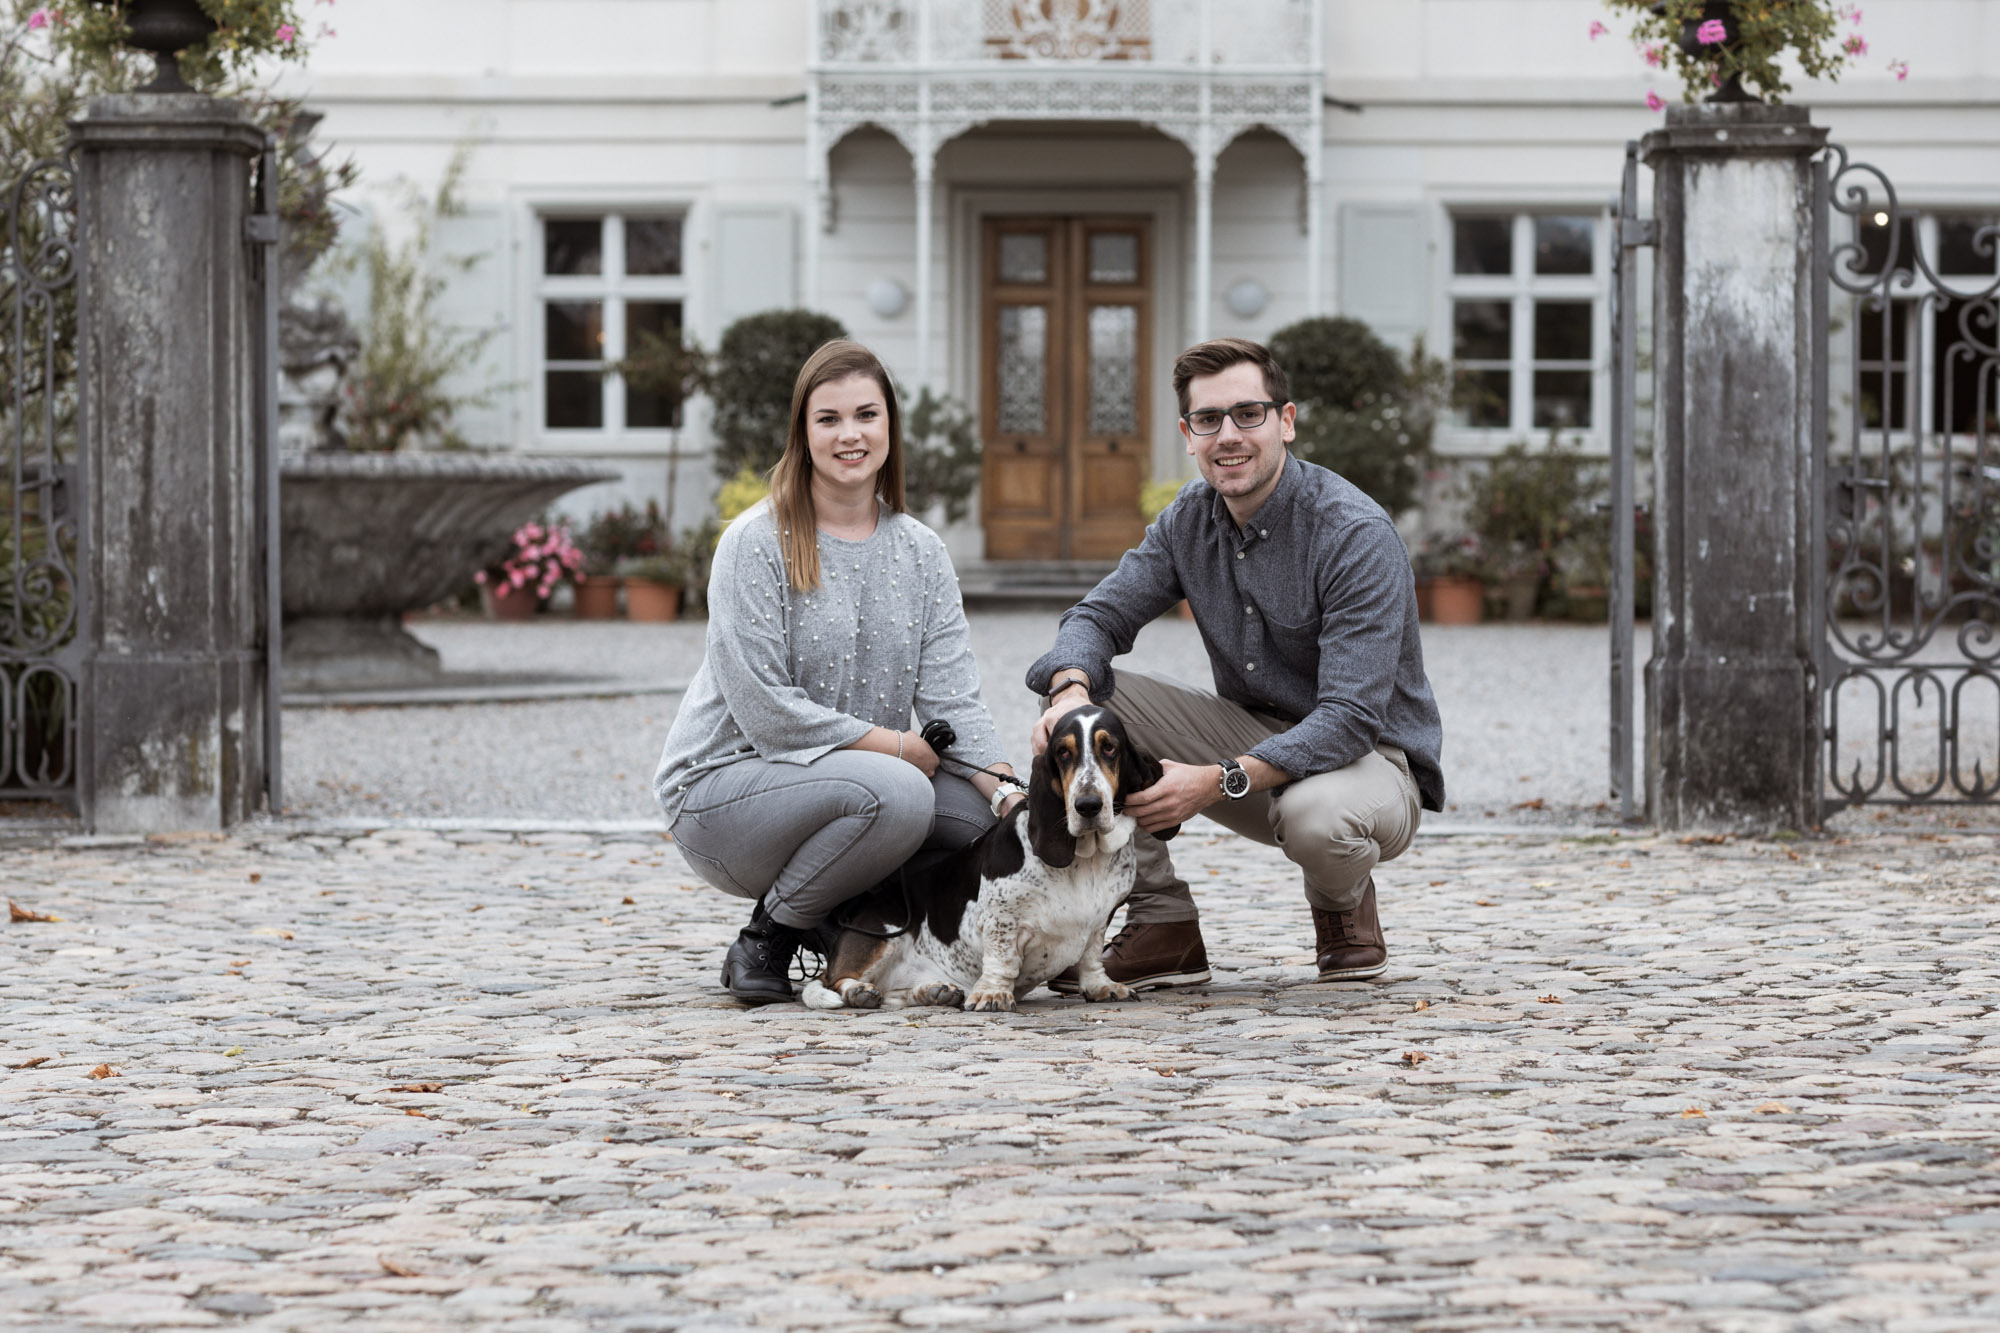 Grossfamilien Fotoshooting in Basel - Familie mit Hund beim Fotoshooting